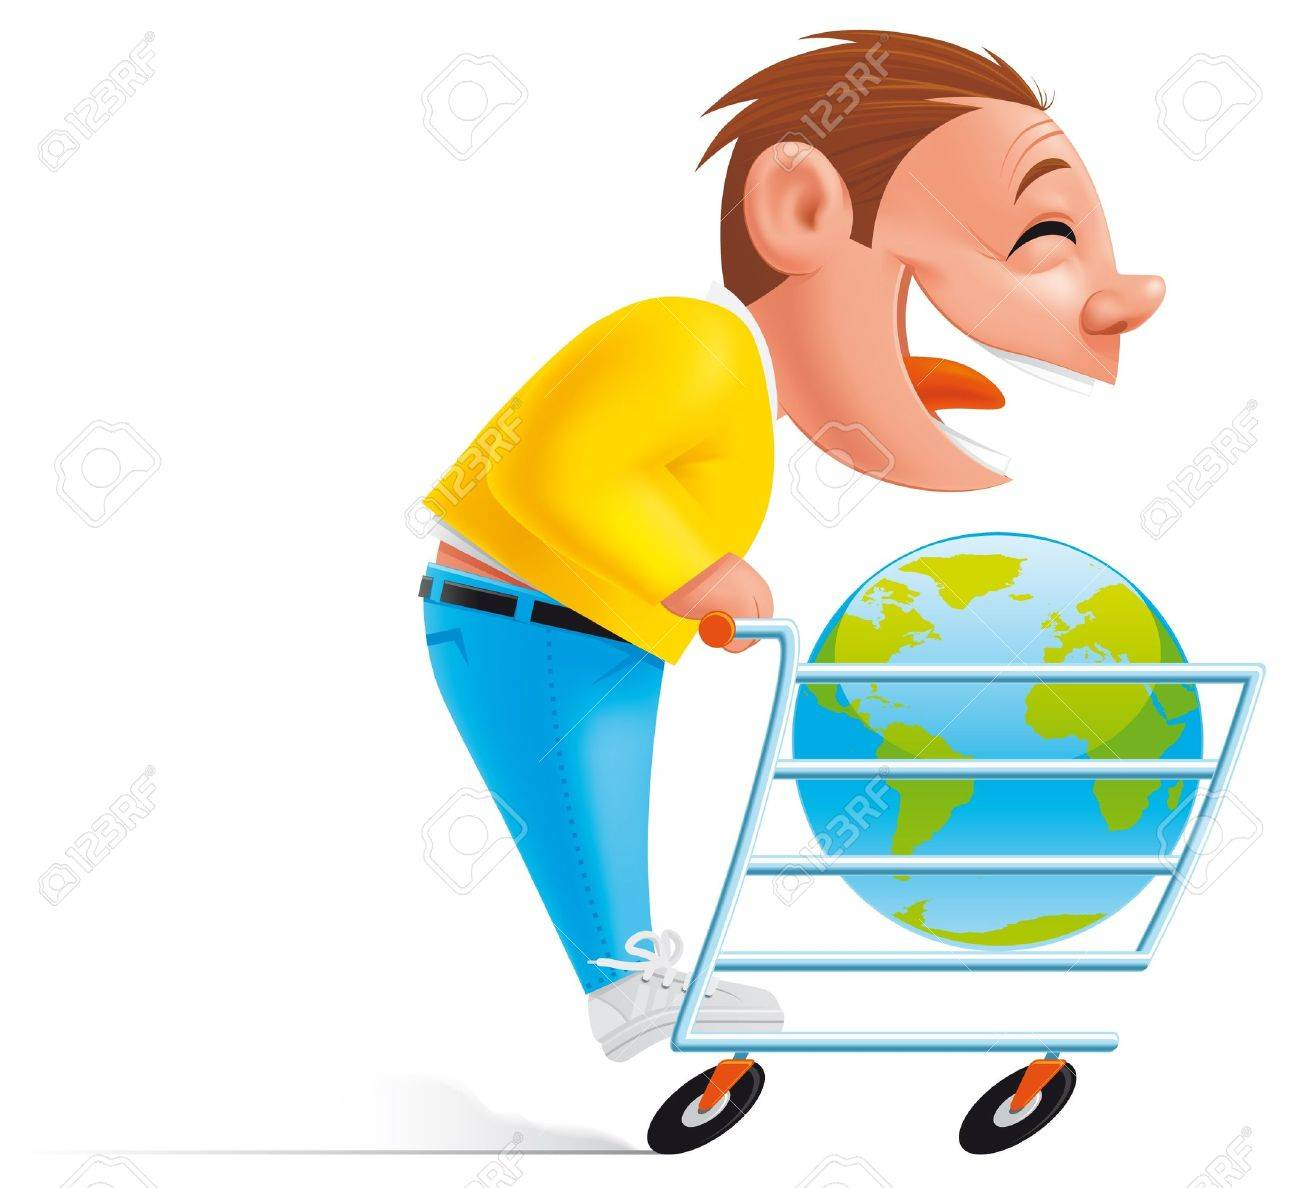 Shopping online Stock Photo - 11843199